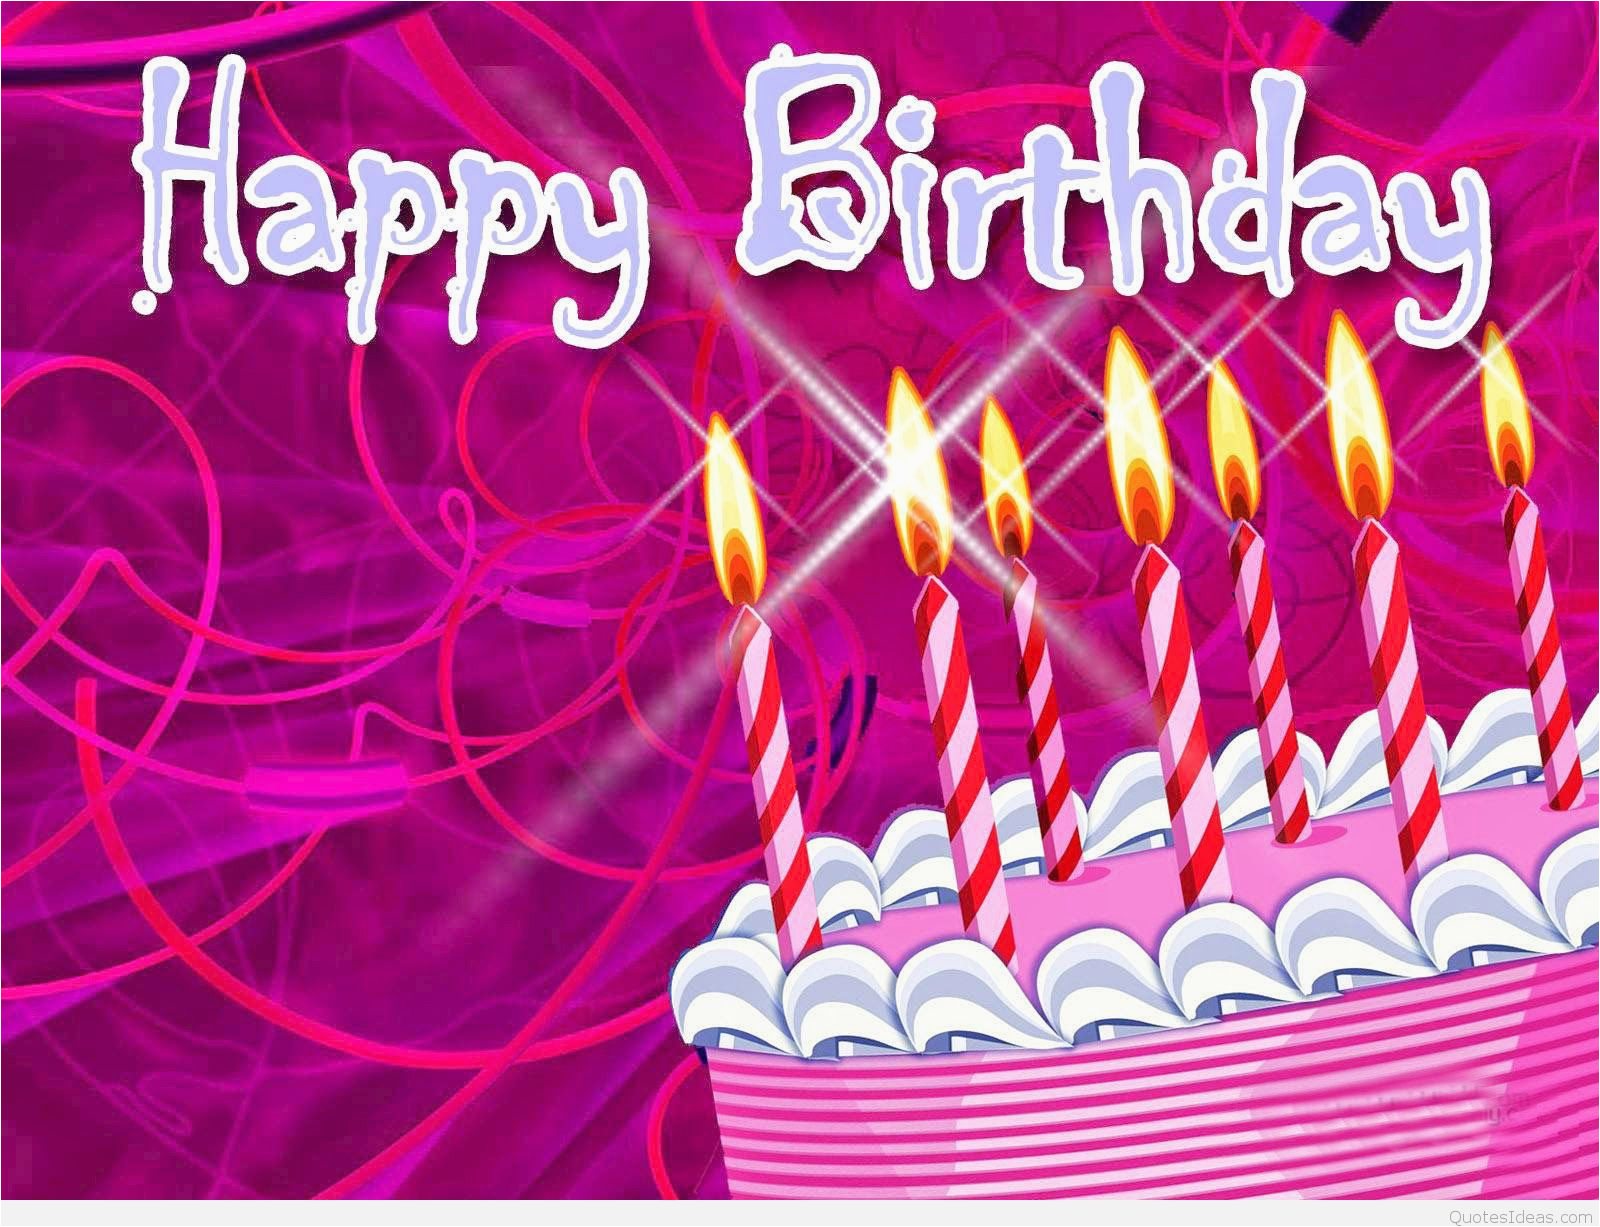 Birthday Cards for Facebook Timeline Birthday Cards for Facebook Timeline